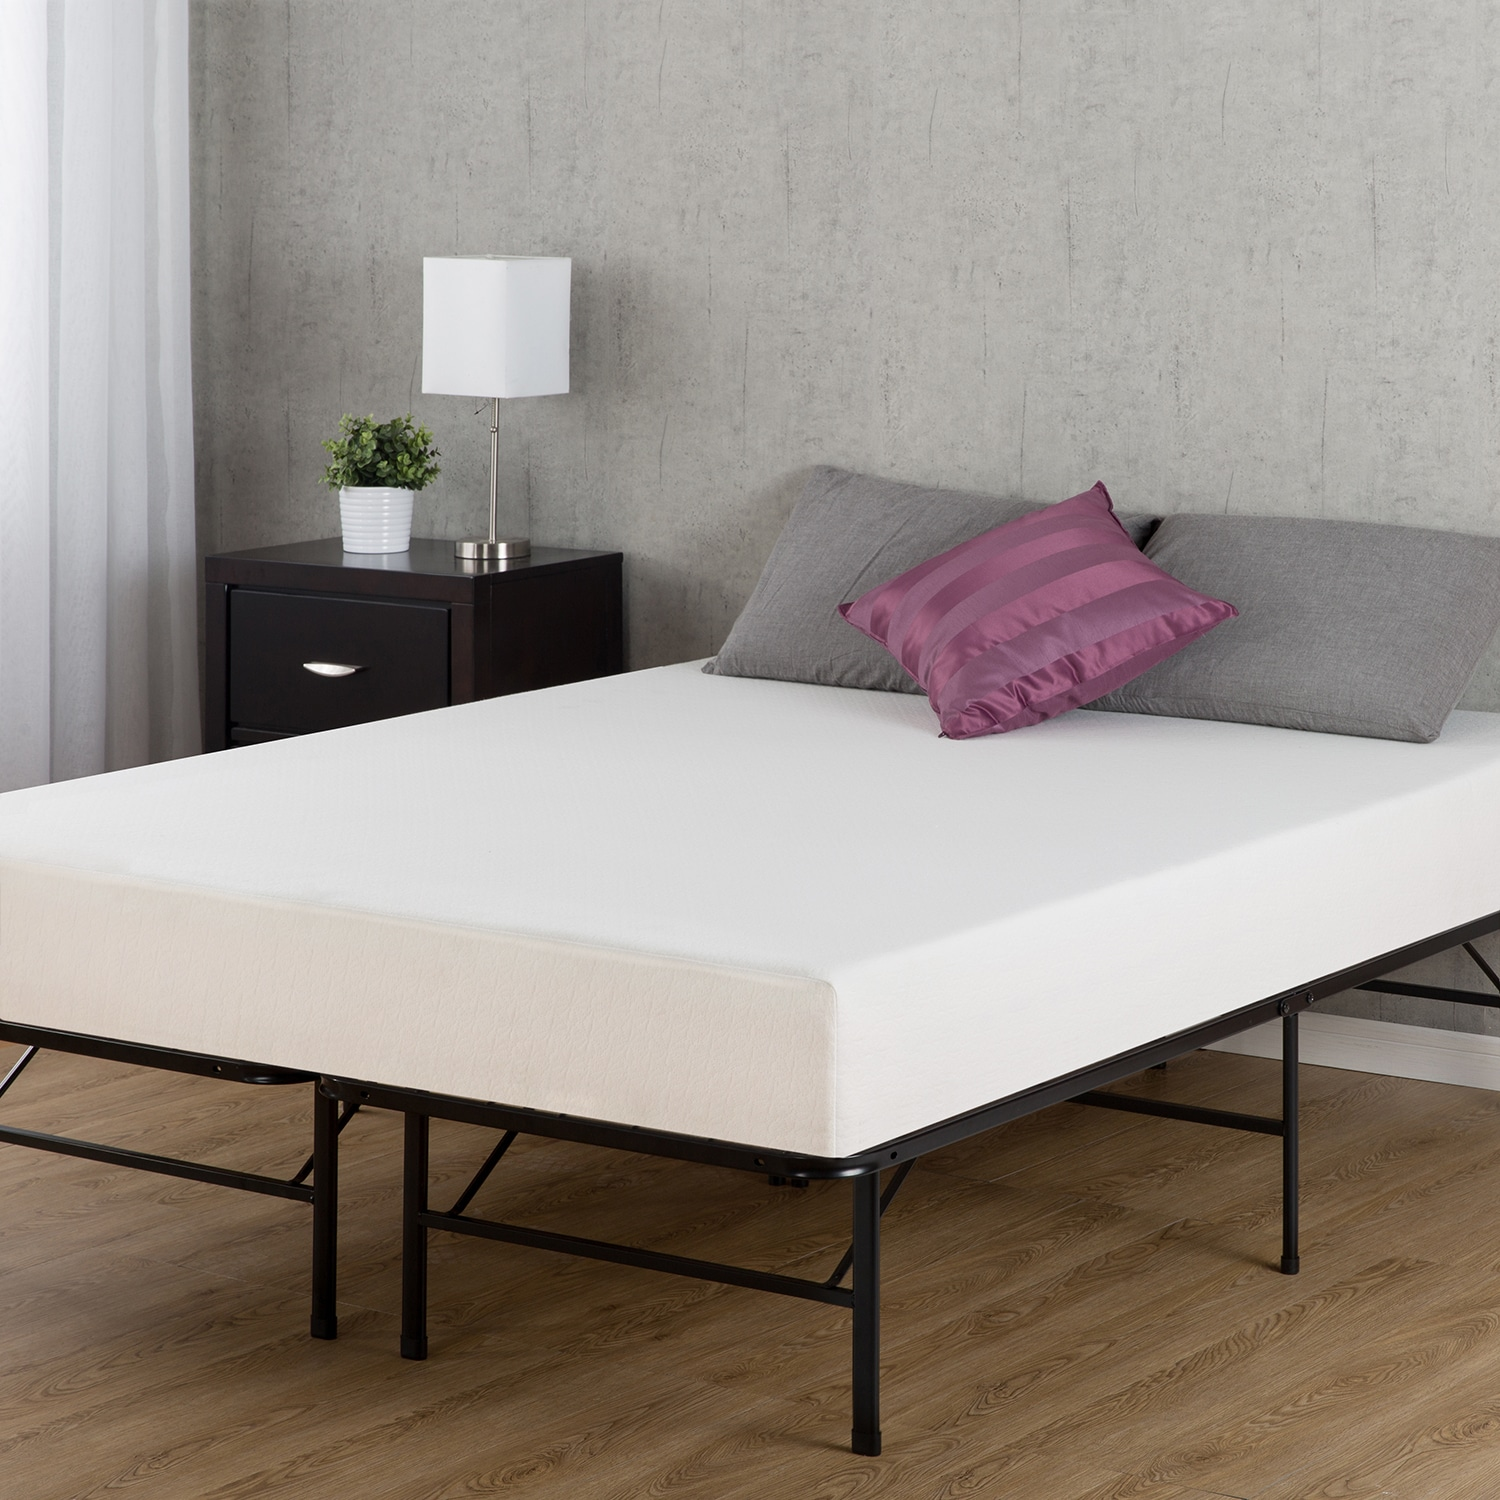 95d908d650db Shop Priage by Zinus 6 inch Full-size Memory Foam Mattress and SmartBase  Foundation Set - Free Shipping Today - Overstock - 13769371